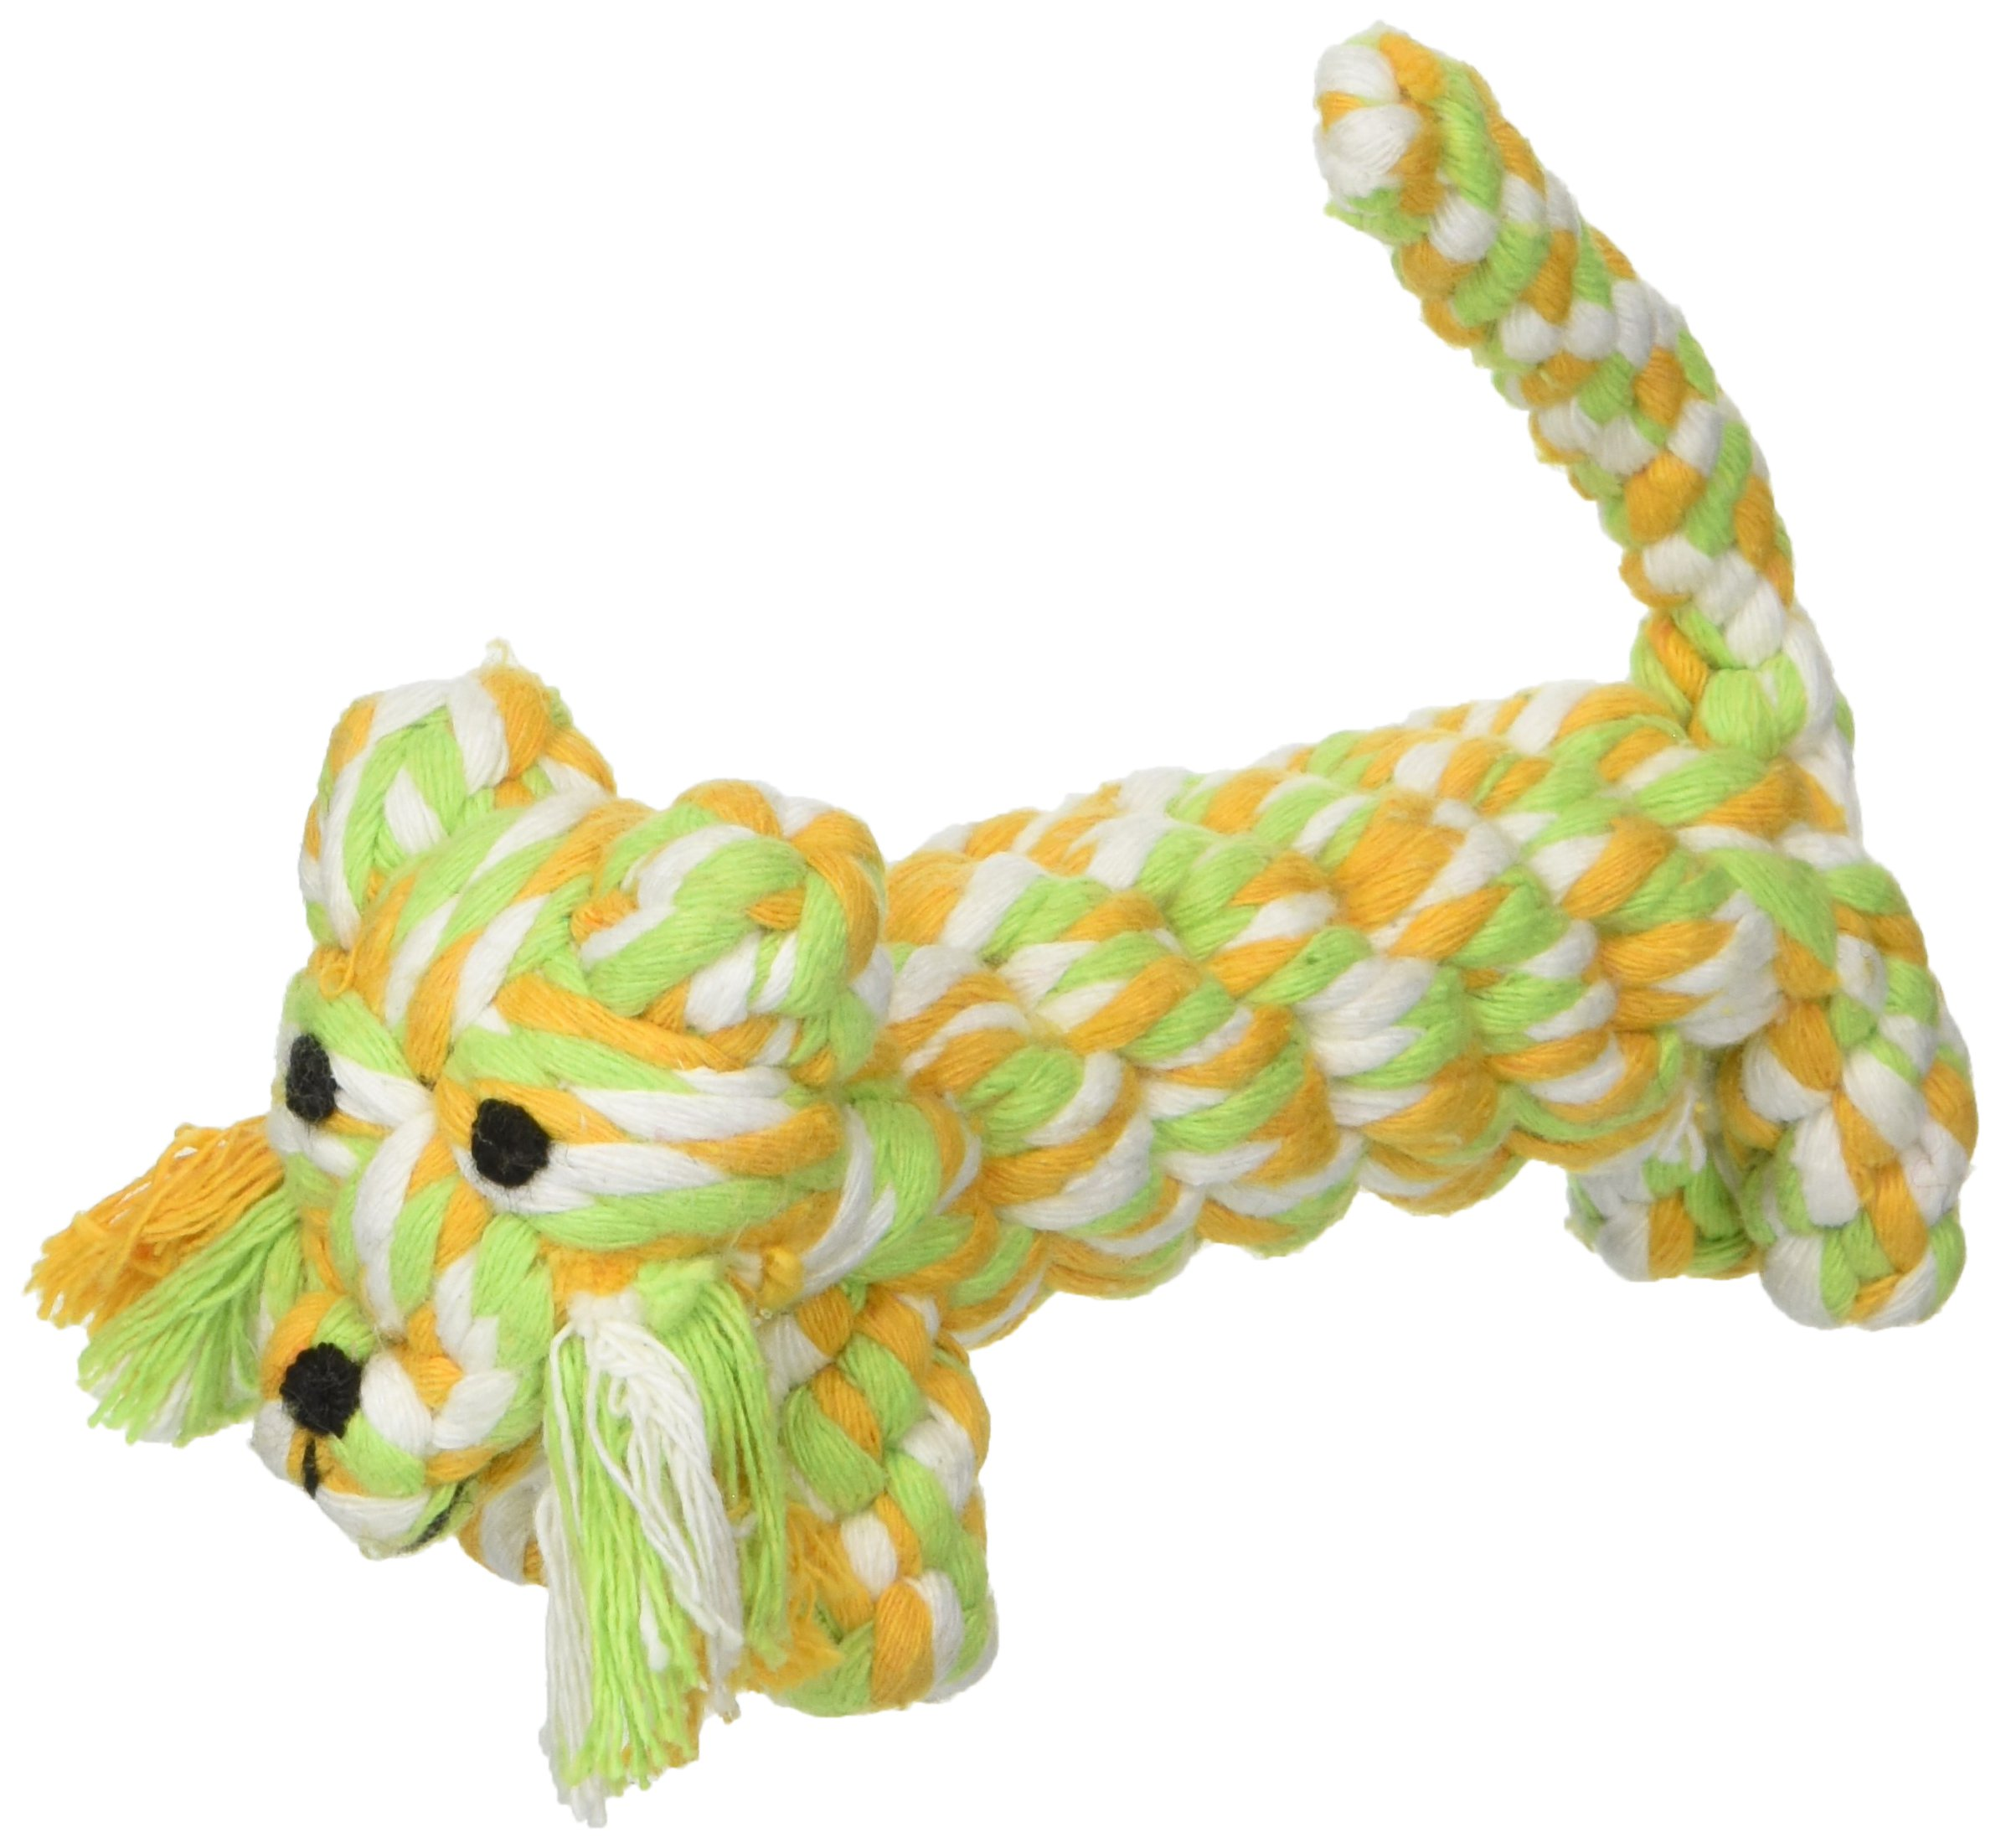 SMALLLEE_LUCKY_STORE XCW0015 Pet Tiger Rope Chew Toy for Dogs, Multicolor, Small